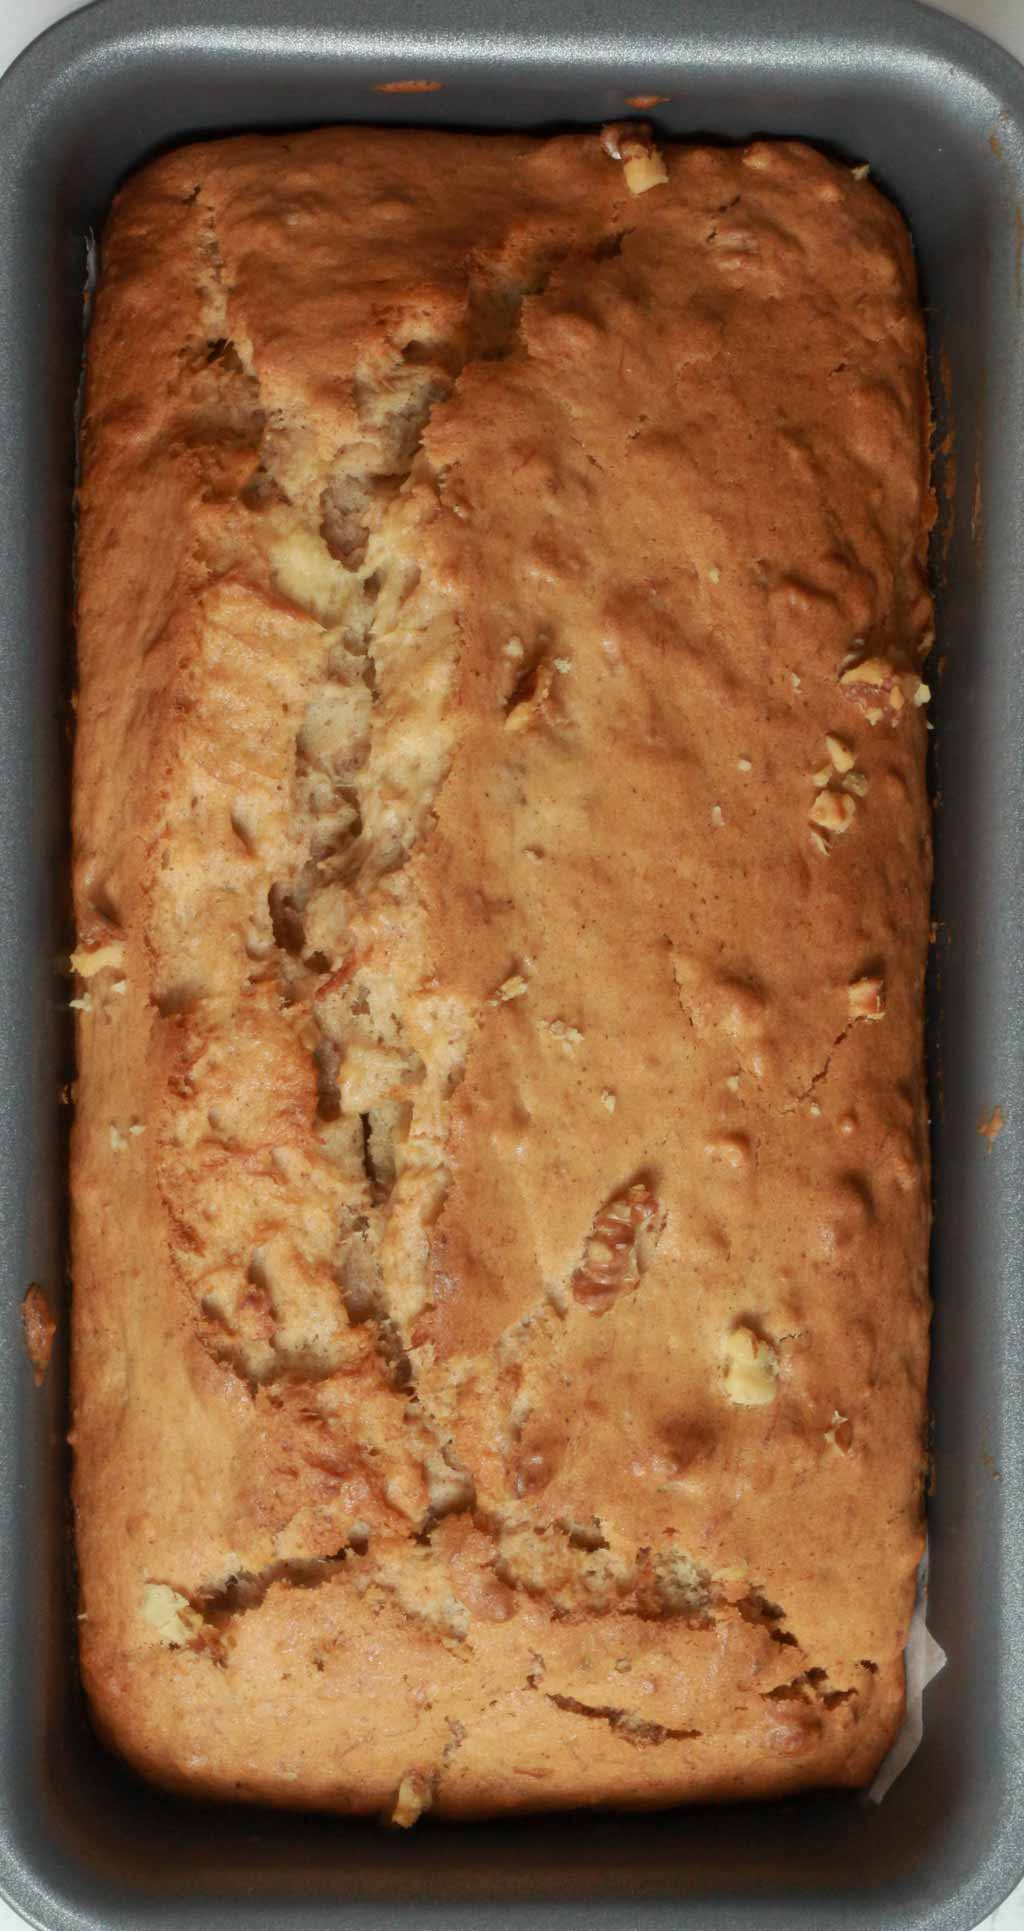 Baked Banana Bread In Loaf Tin